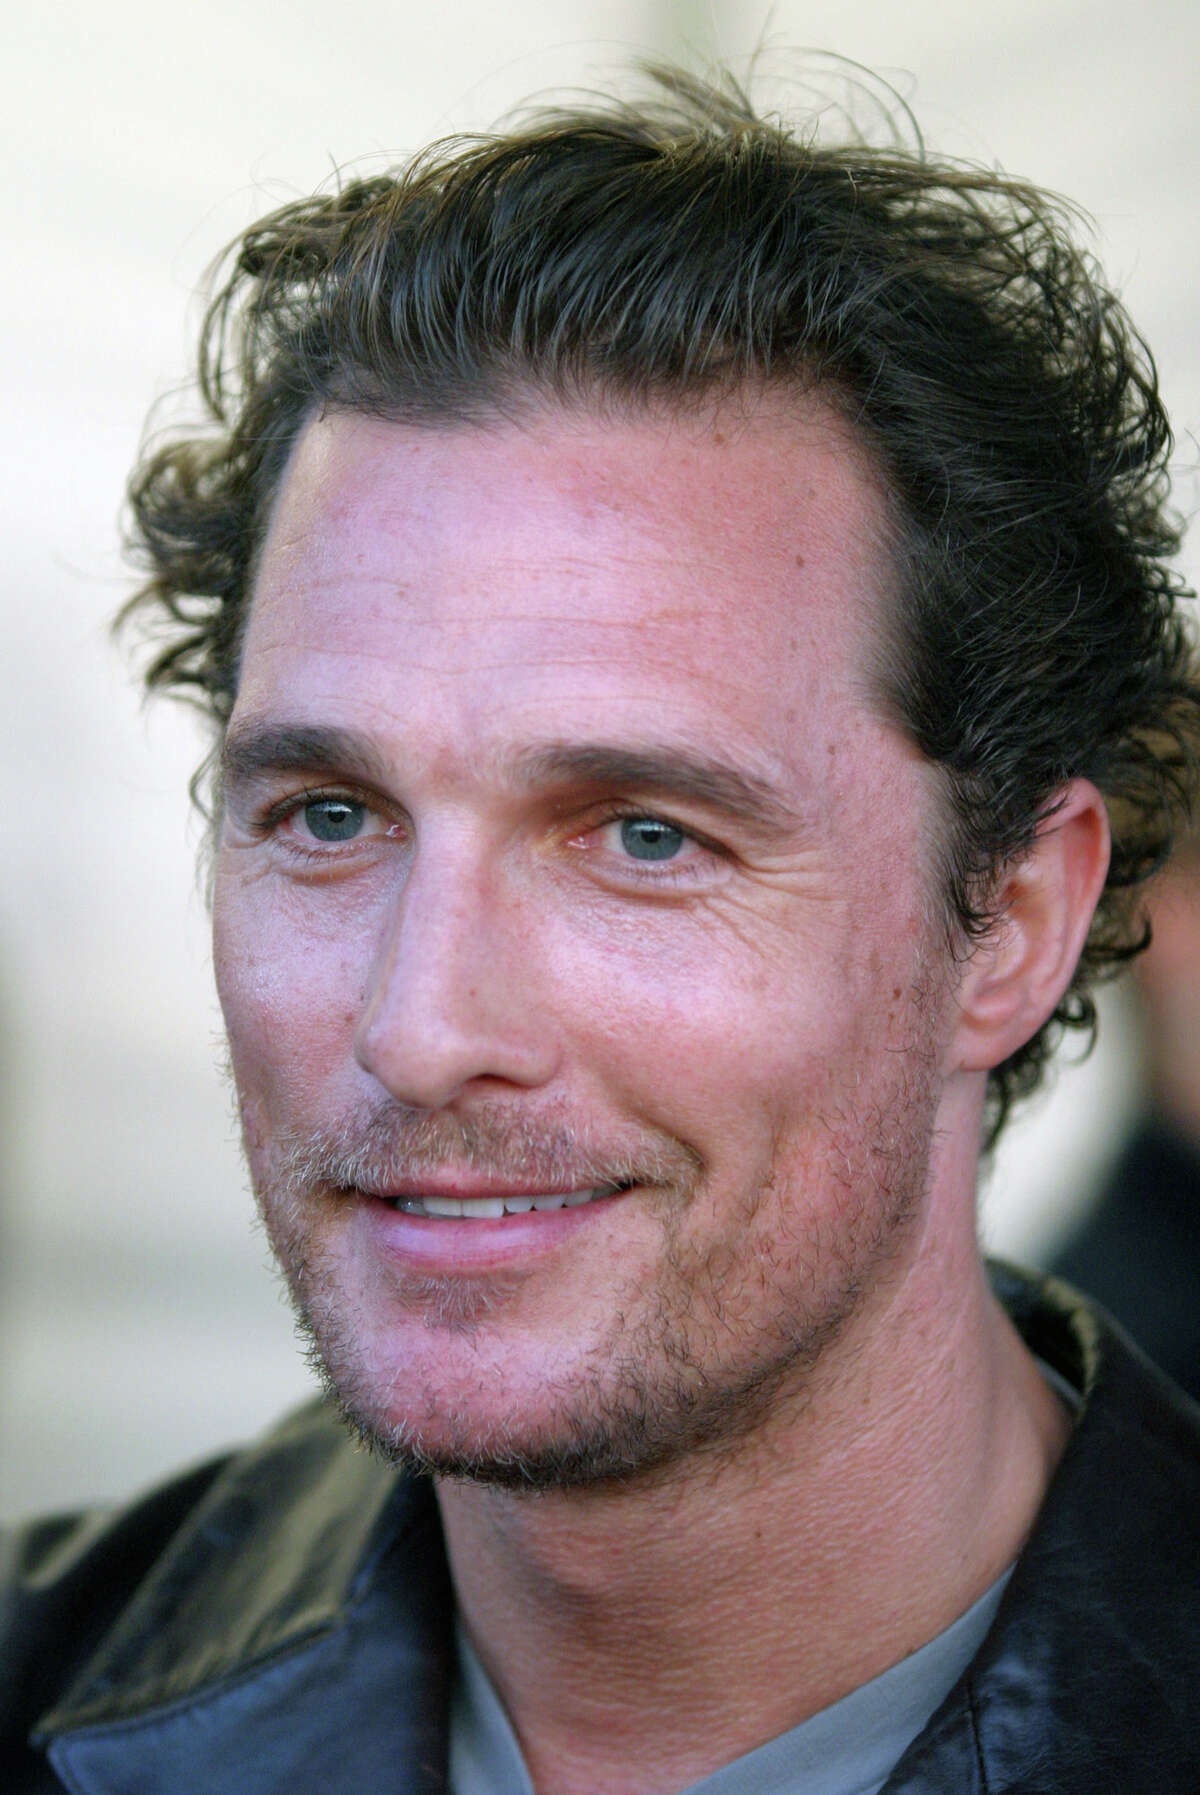 Matthew McConaughey The actor auctioned off his 1971 Stingray for hurricane relief in 2006. It raised $61,600 for charity.